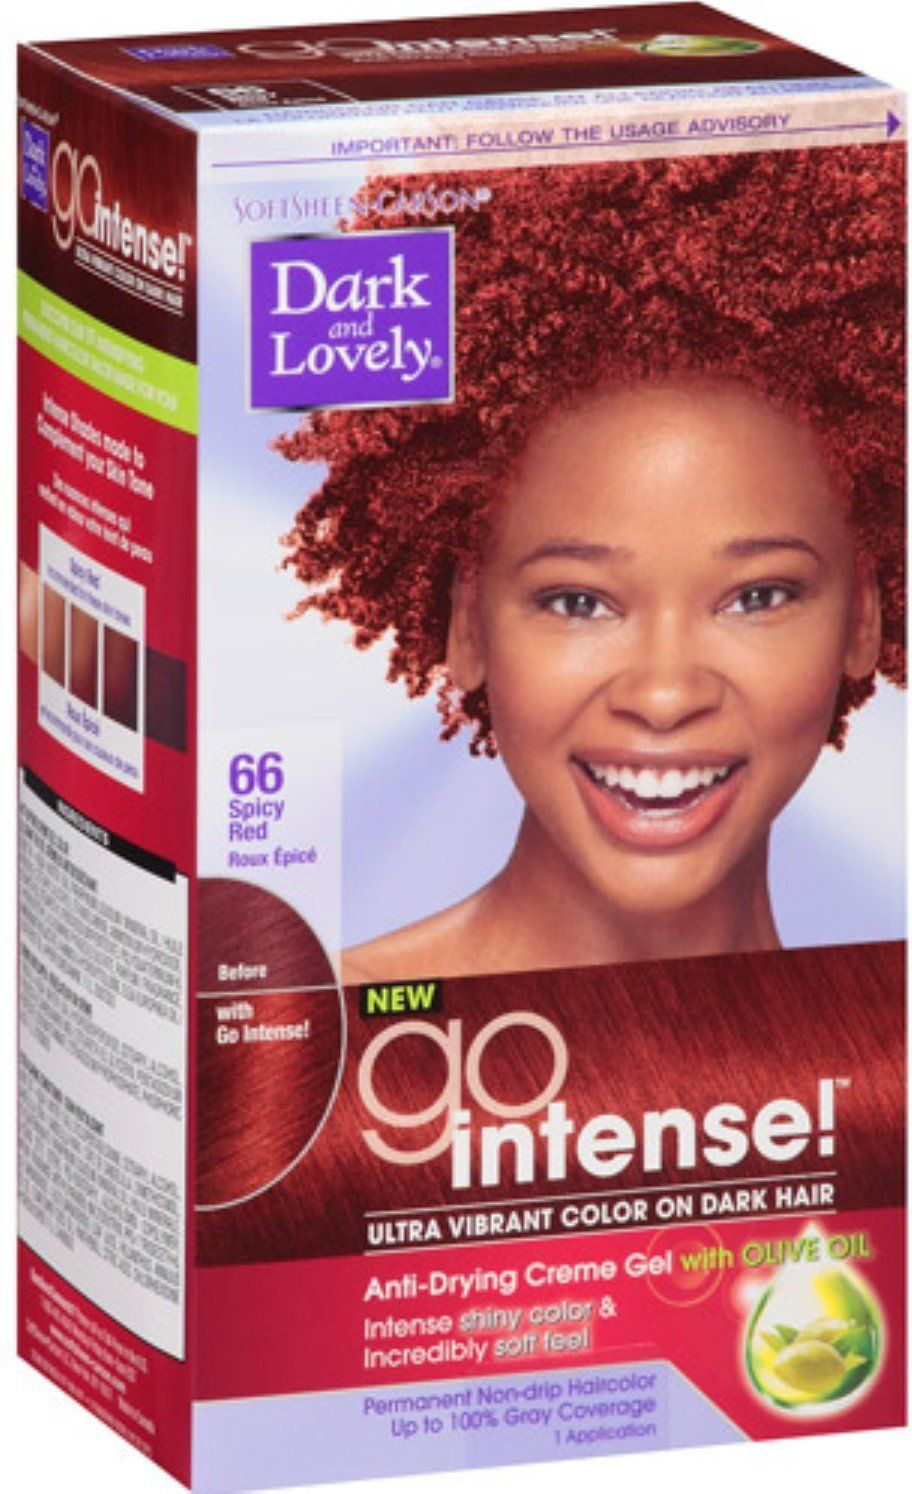 Dark And Lovely Go Intense Hair Color No66 Spicy Red 1 Ea Pack